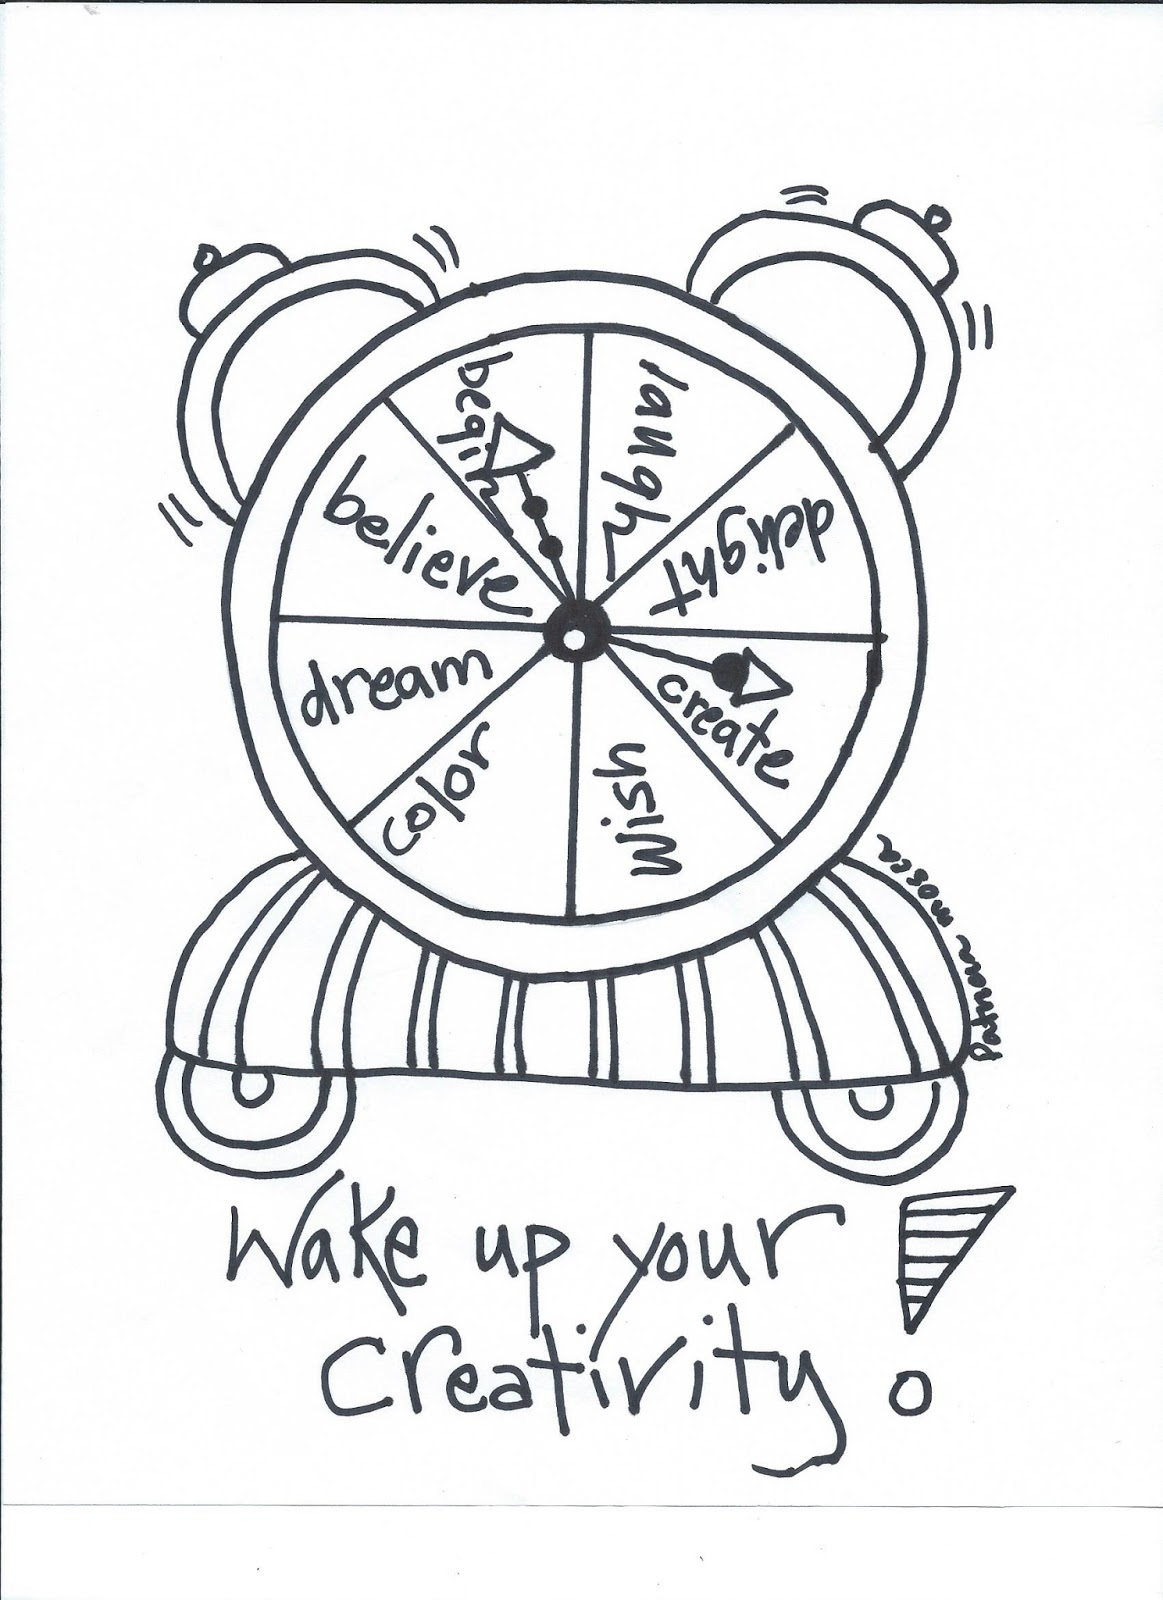 The Creative Playground: wake up...coloring book page